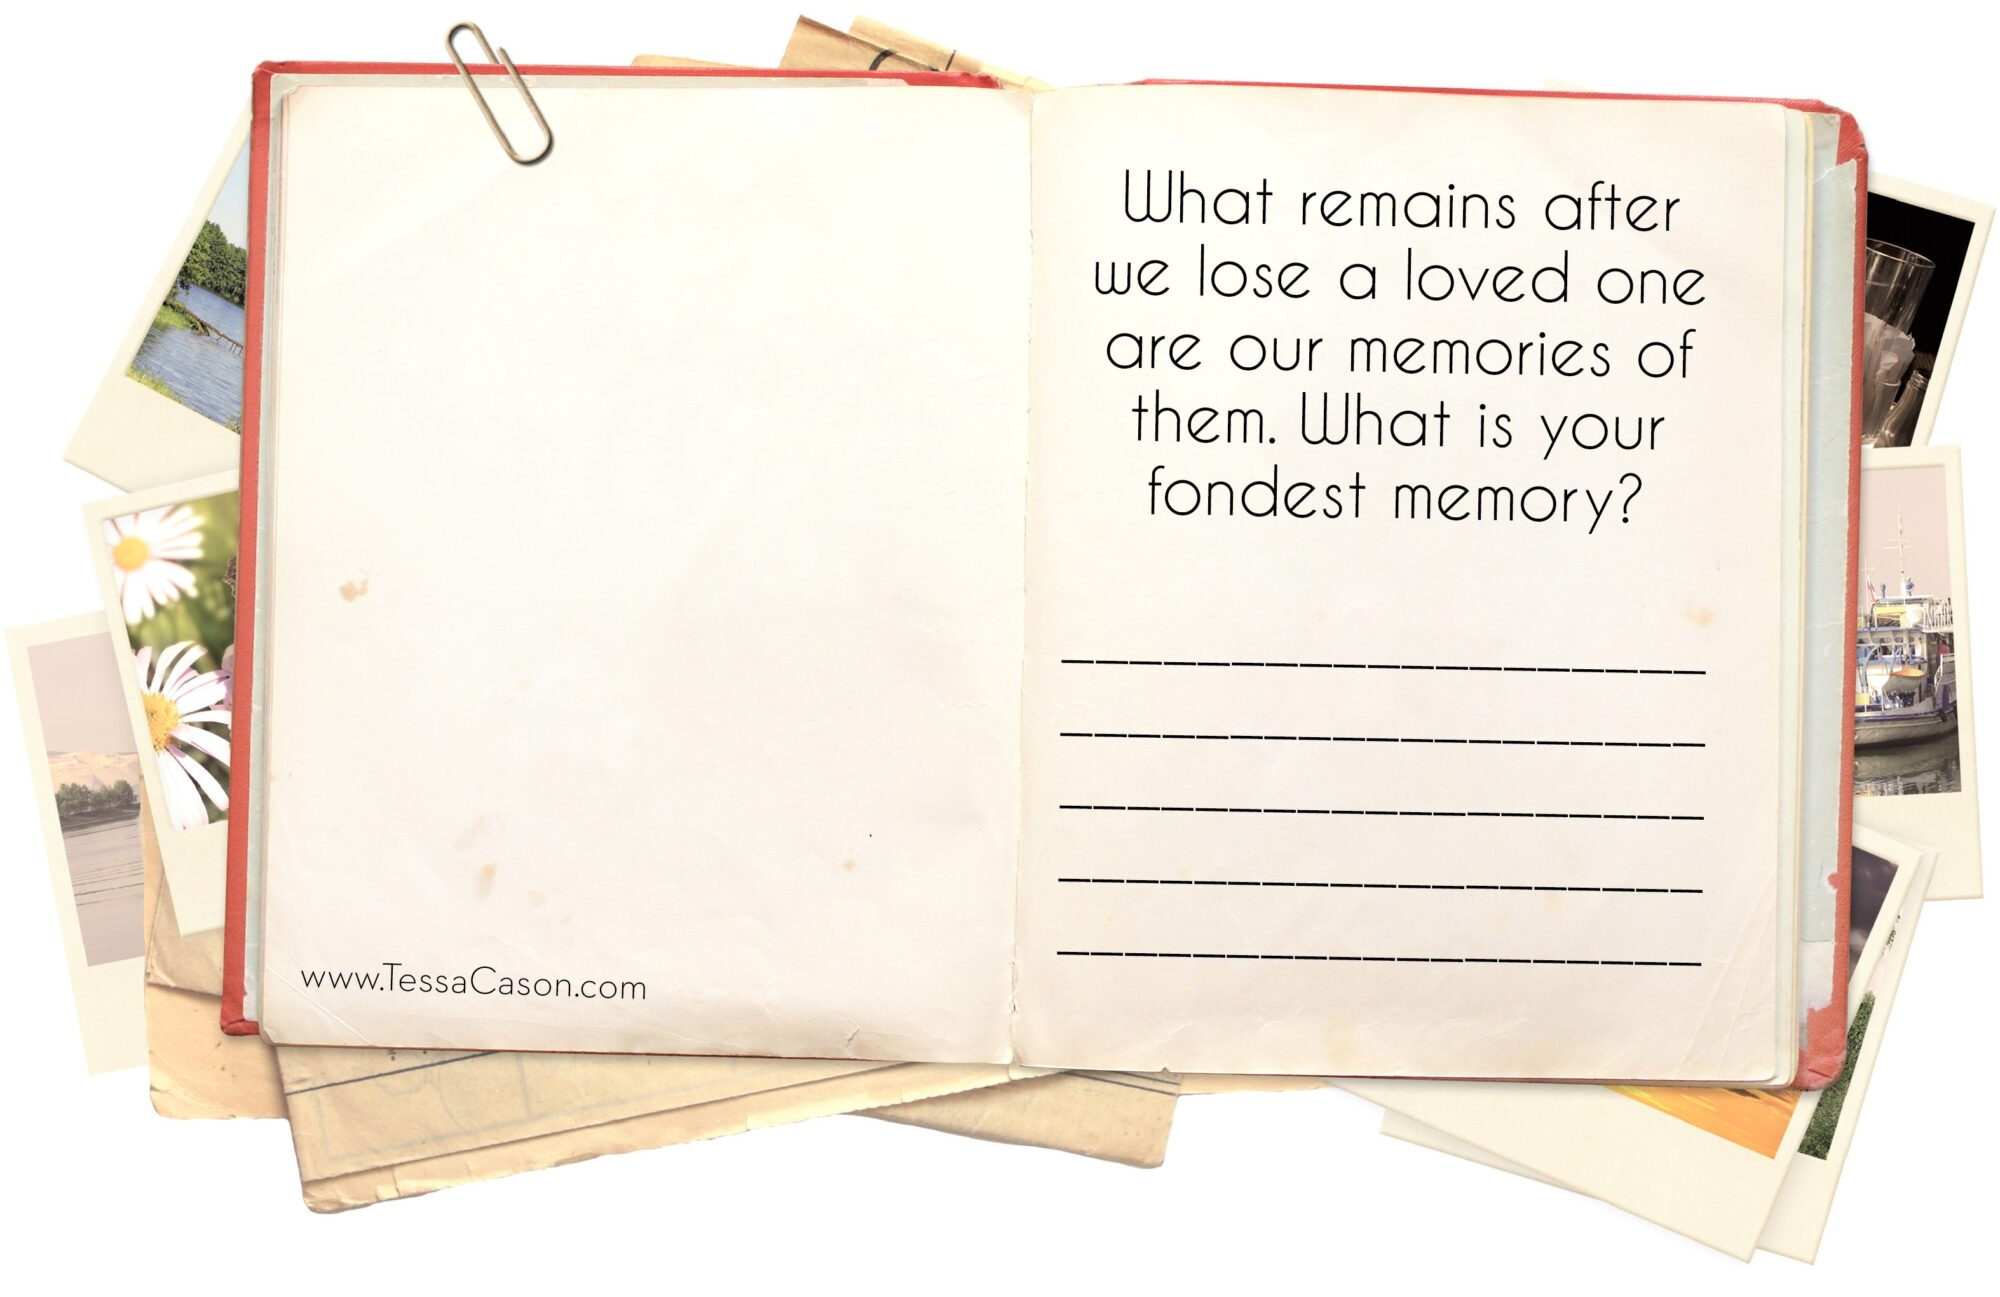 What remains after we lose a loved one are our memories.